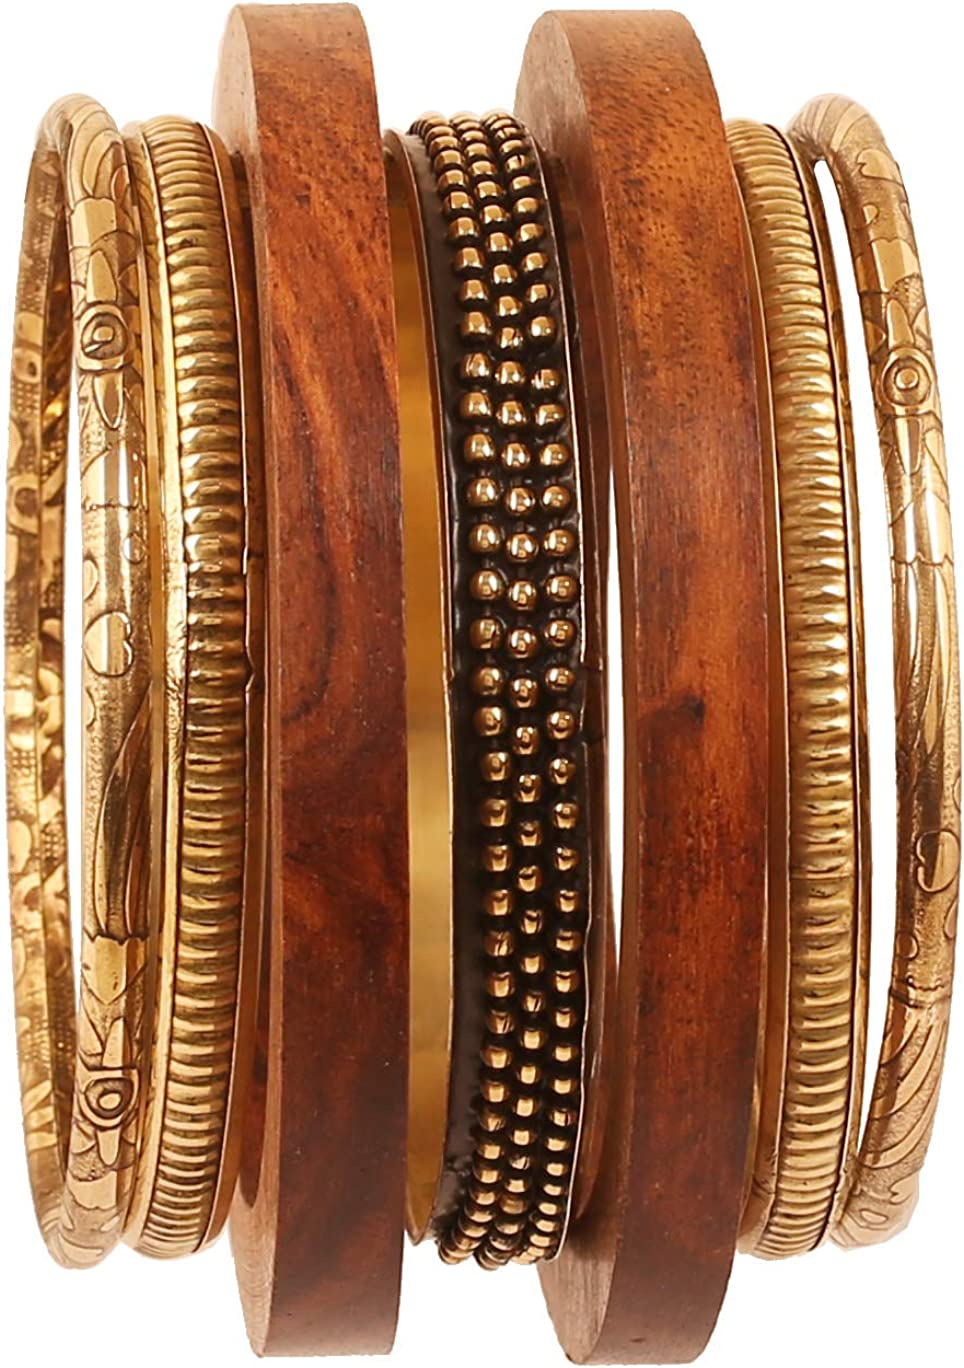 Touchstone Indian Bollywood Hand Cut Natural Wood Pretty Assorted Patterns Brass Designer Jewelry Bangle Bracelets in Gold Tone for Women.